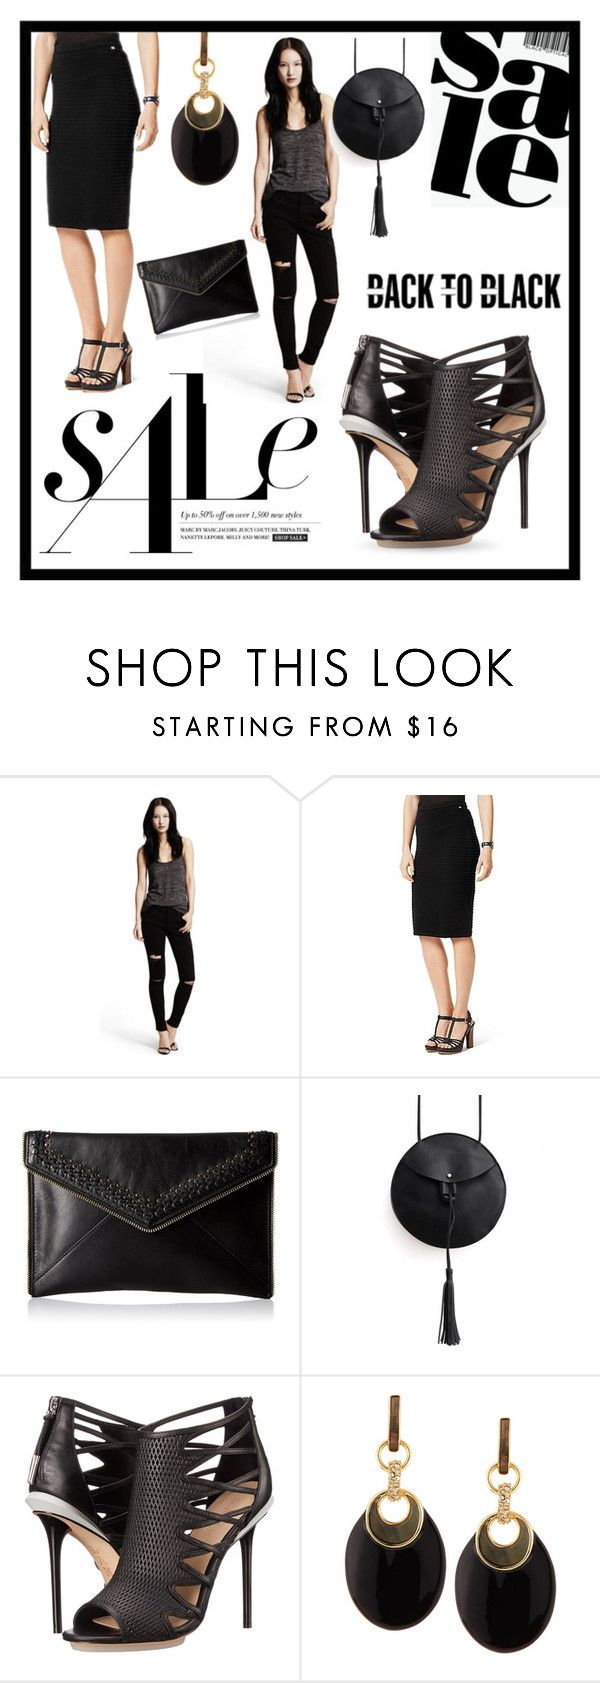 """Black on Sale"" by queenofsienna ❤ liked on Polyvore featuring Clover, Tommy Hilfiger, Rebecca Minkoff, L.A.M.B. and Alexis Bittar"